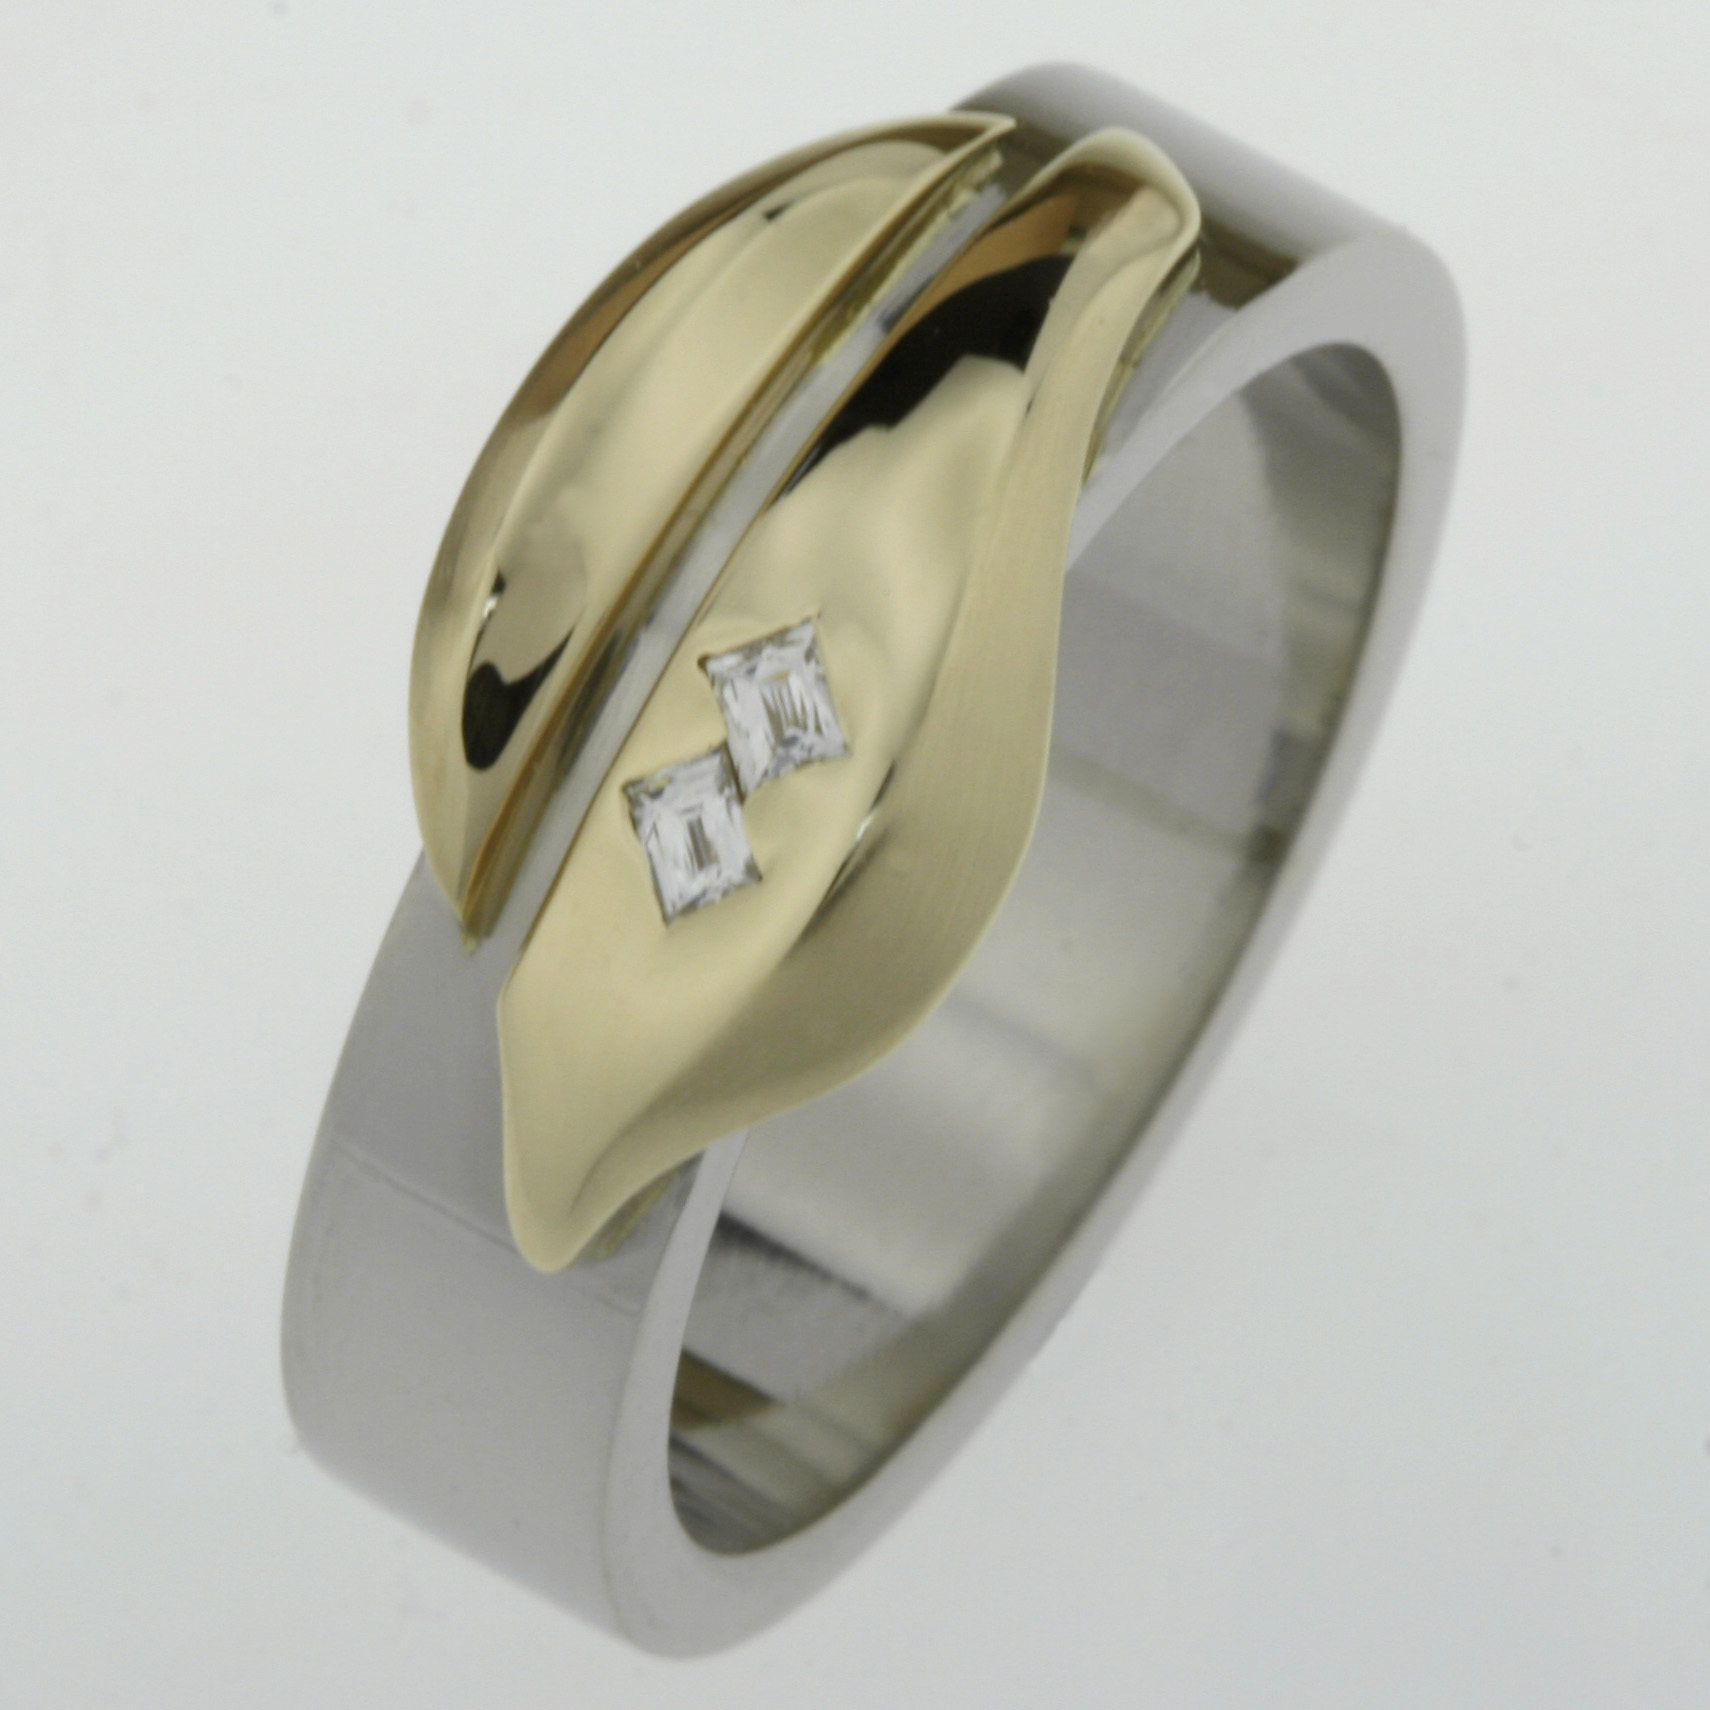 Handmade gents 18ct yellow gold and palladium 'Tycoon' cut diamond wedding ring